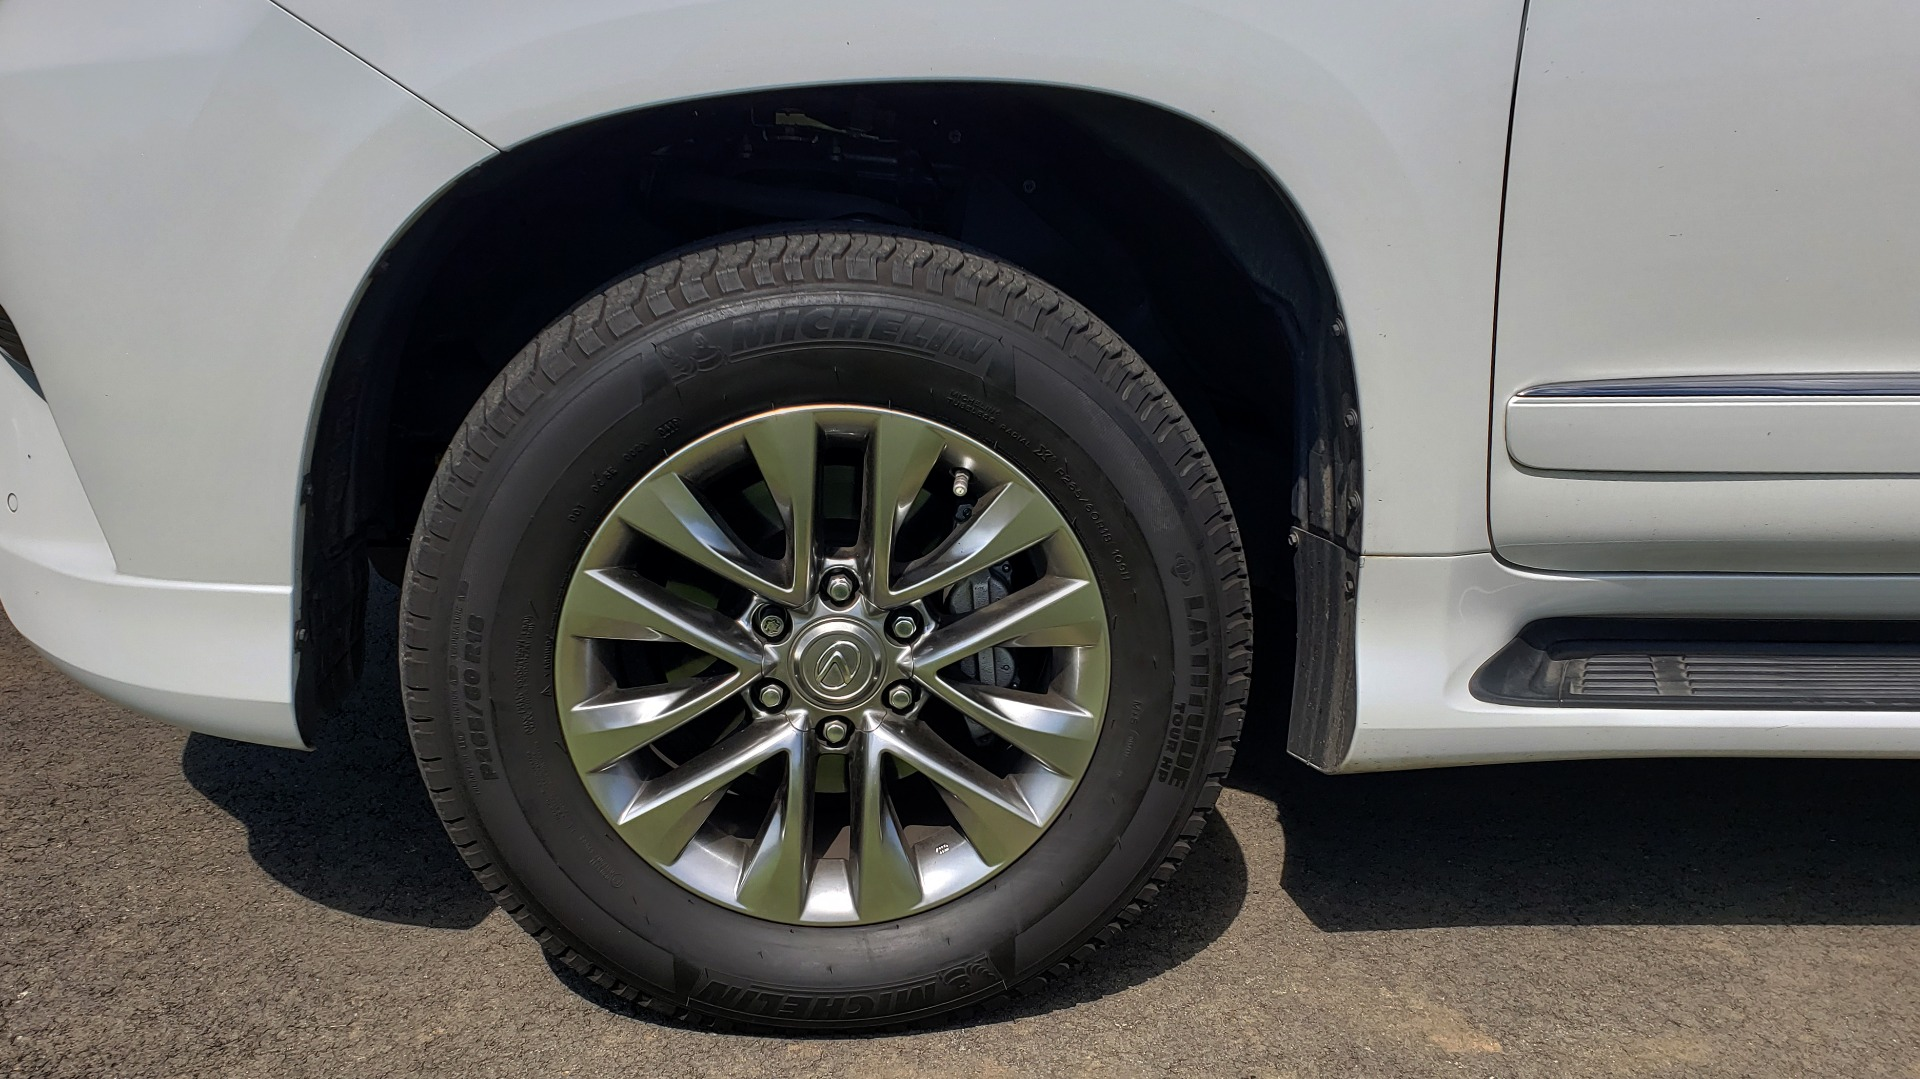 Used 2019 Lexus GX 460 LUXURY 4WD / DRVR SPRT PKG / MARK LEV SND / DYN CRUISE for sale Sold at Formula Imports in Charlotte NC 28227 86